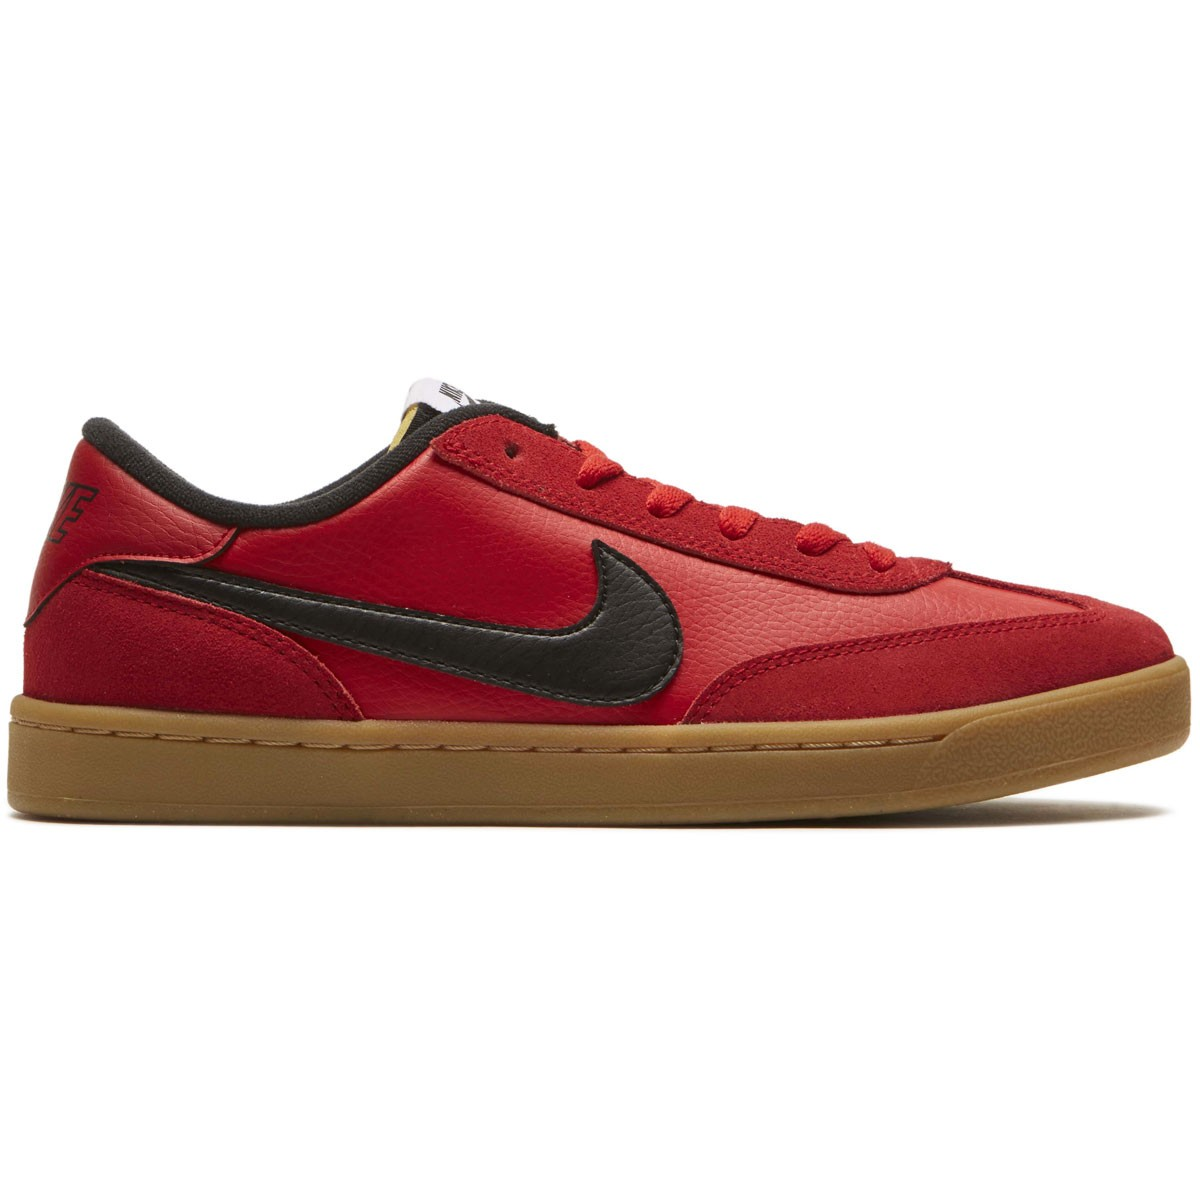 5ec6f18cd9d8e5 Nike SB FC Classic Shoes